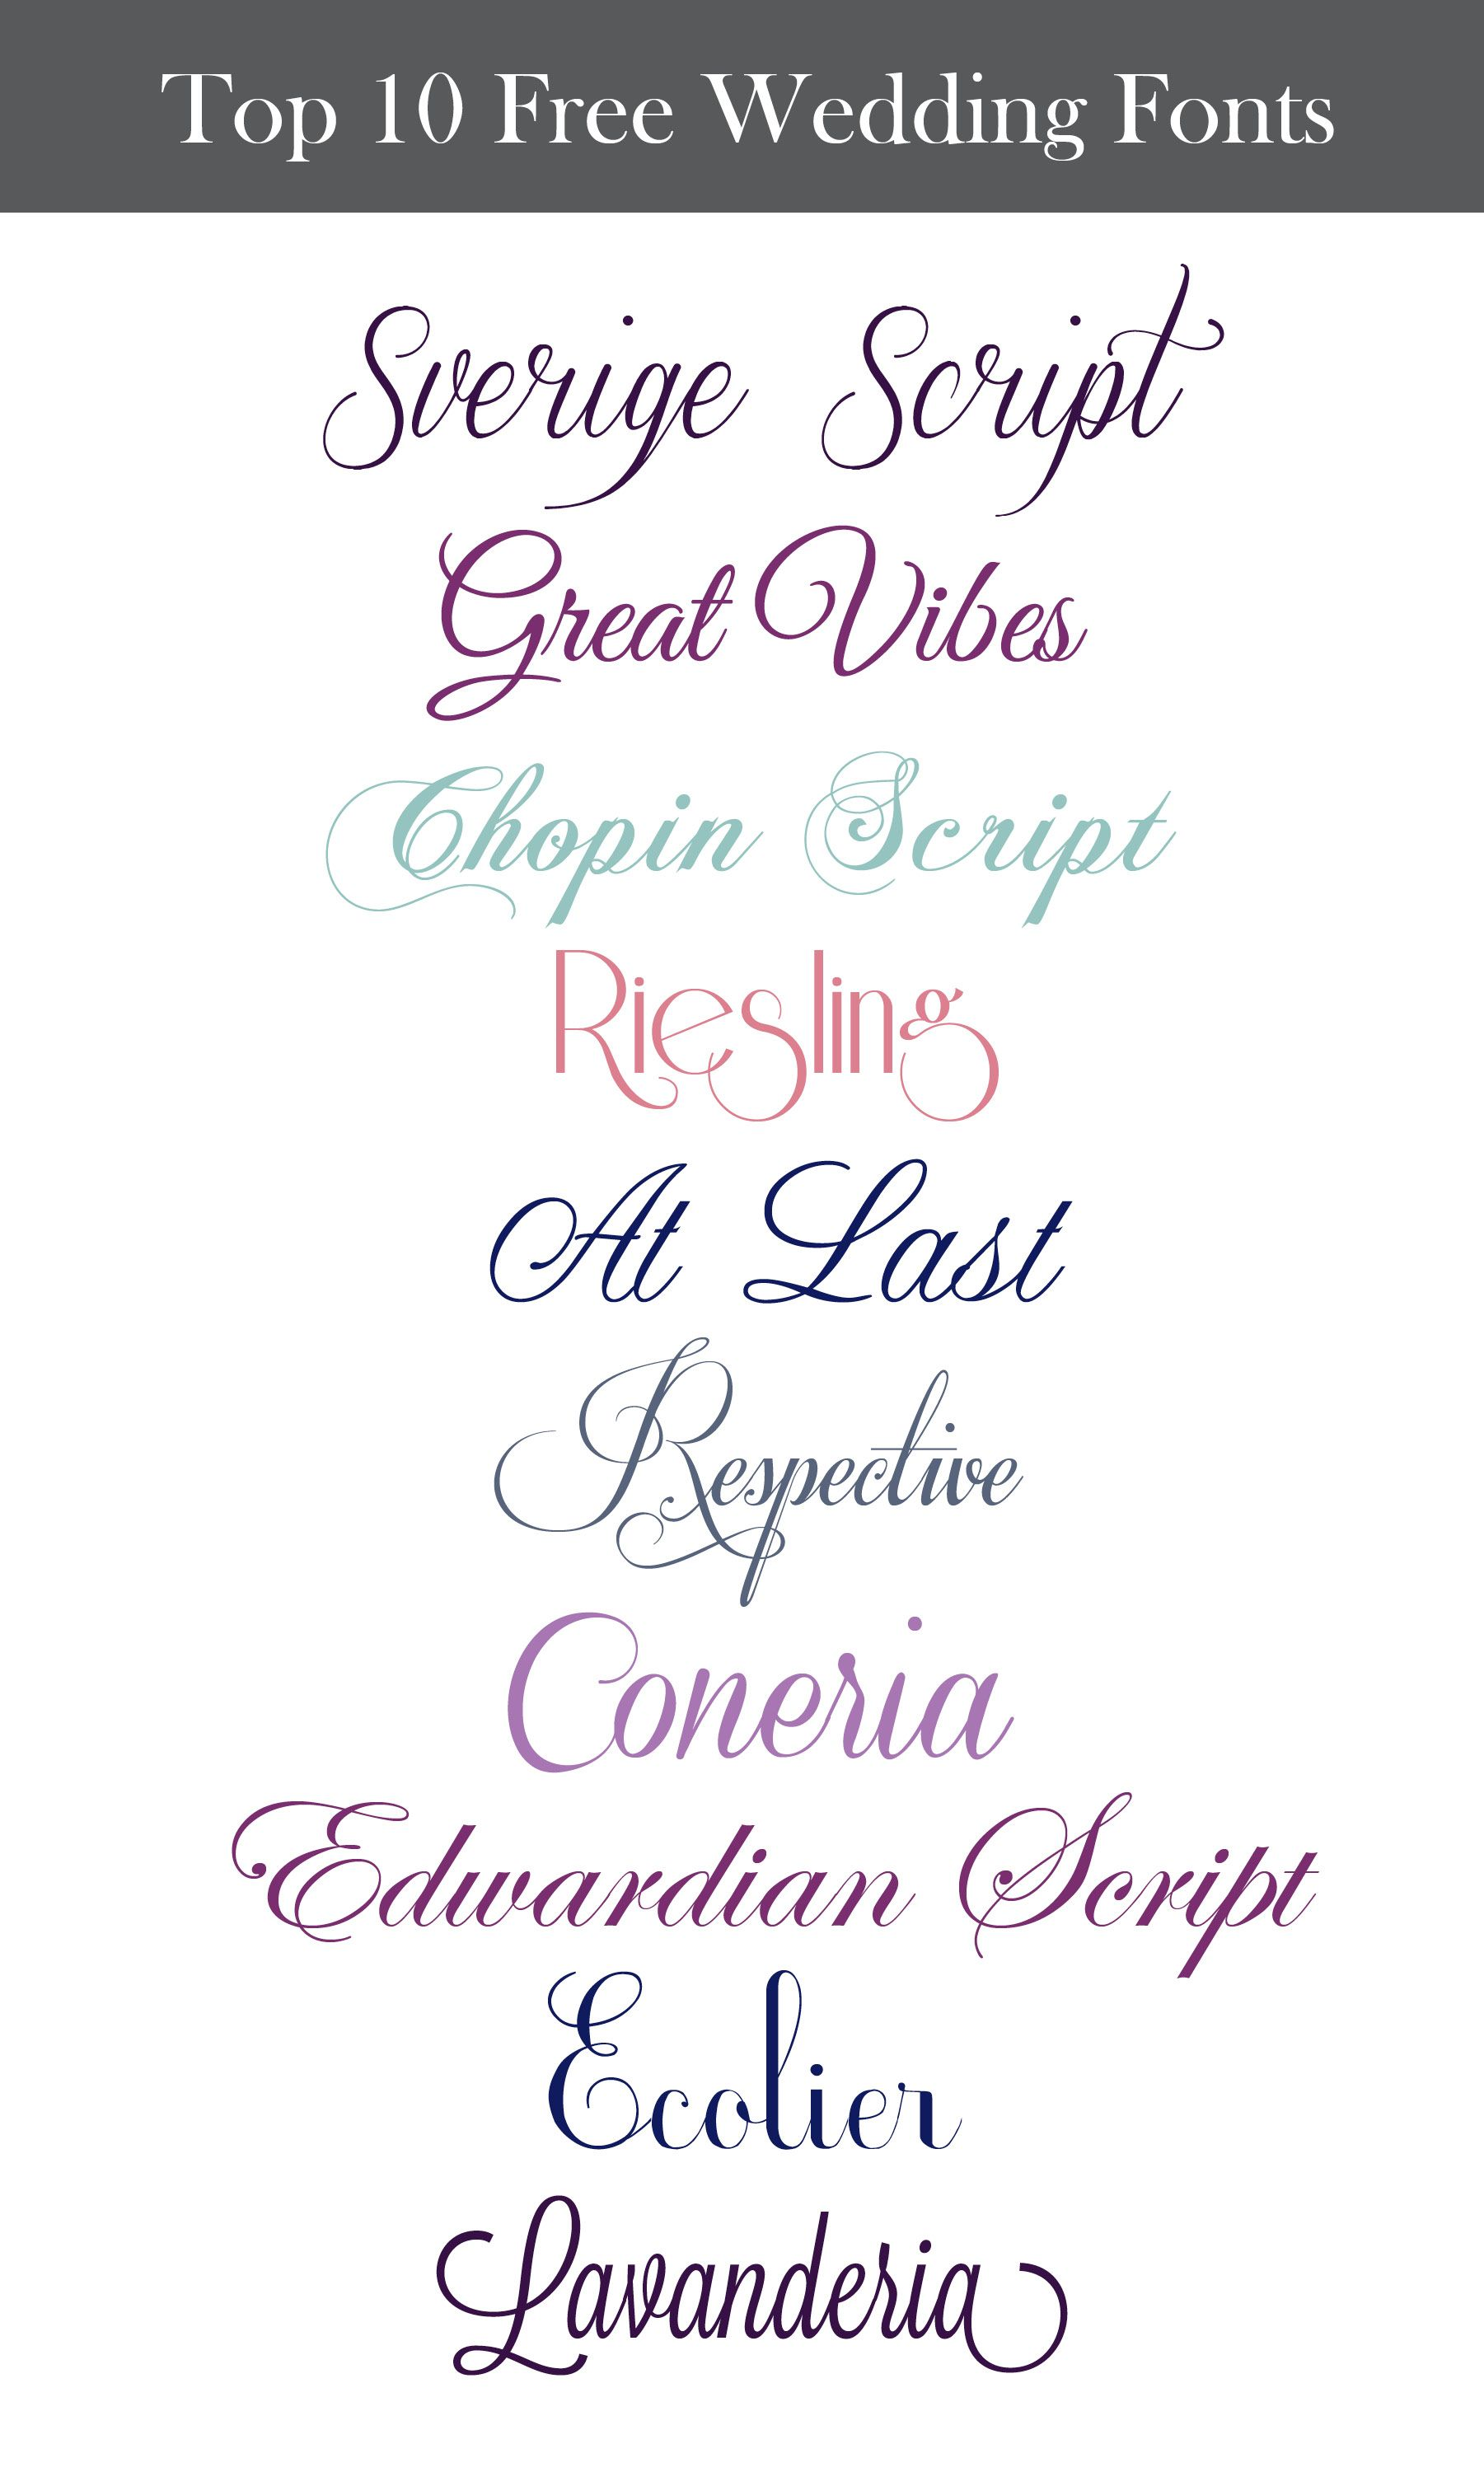 Wedding fonts free on pinterest dingbats